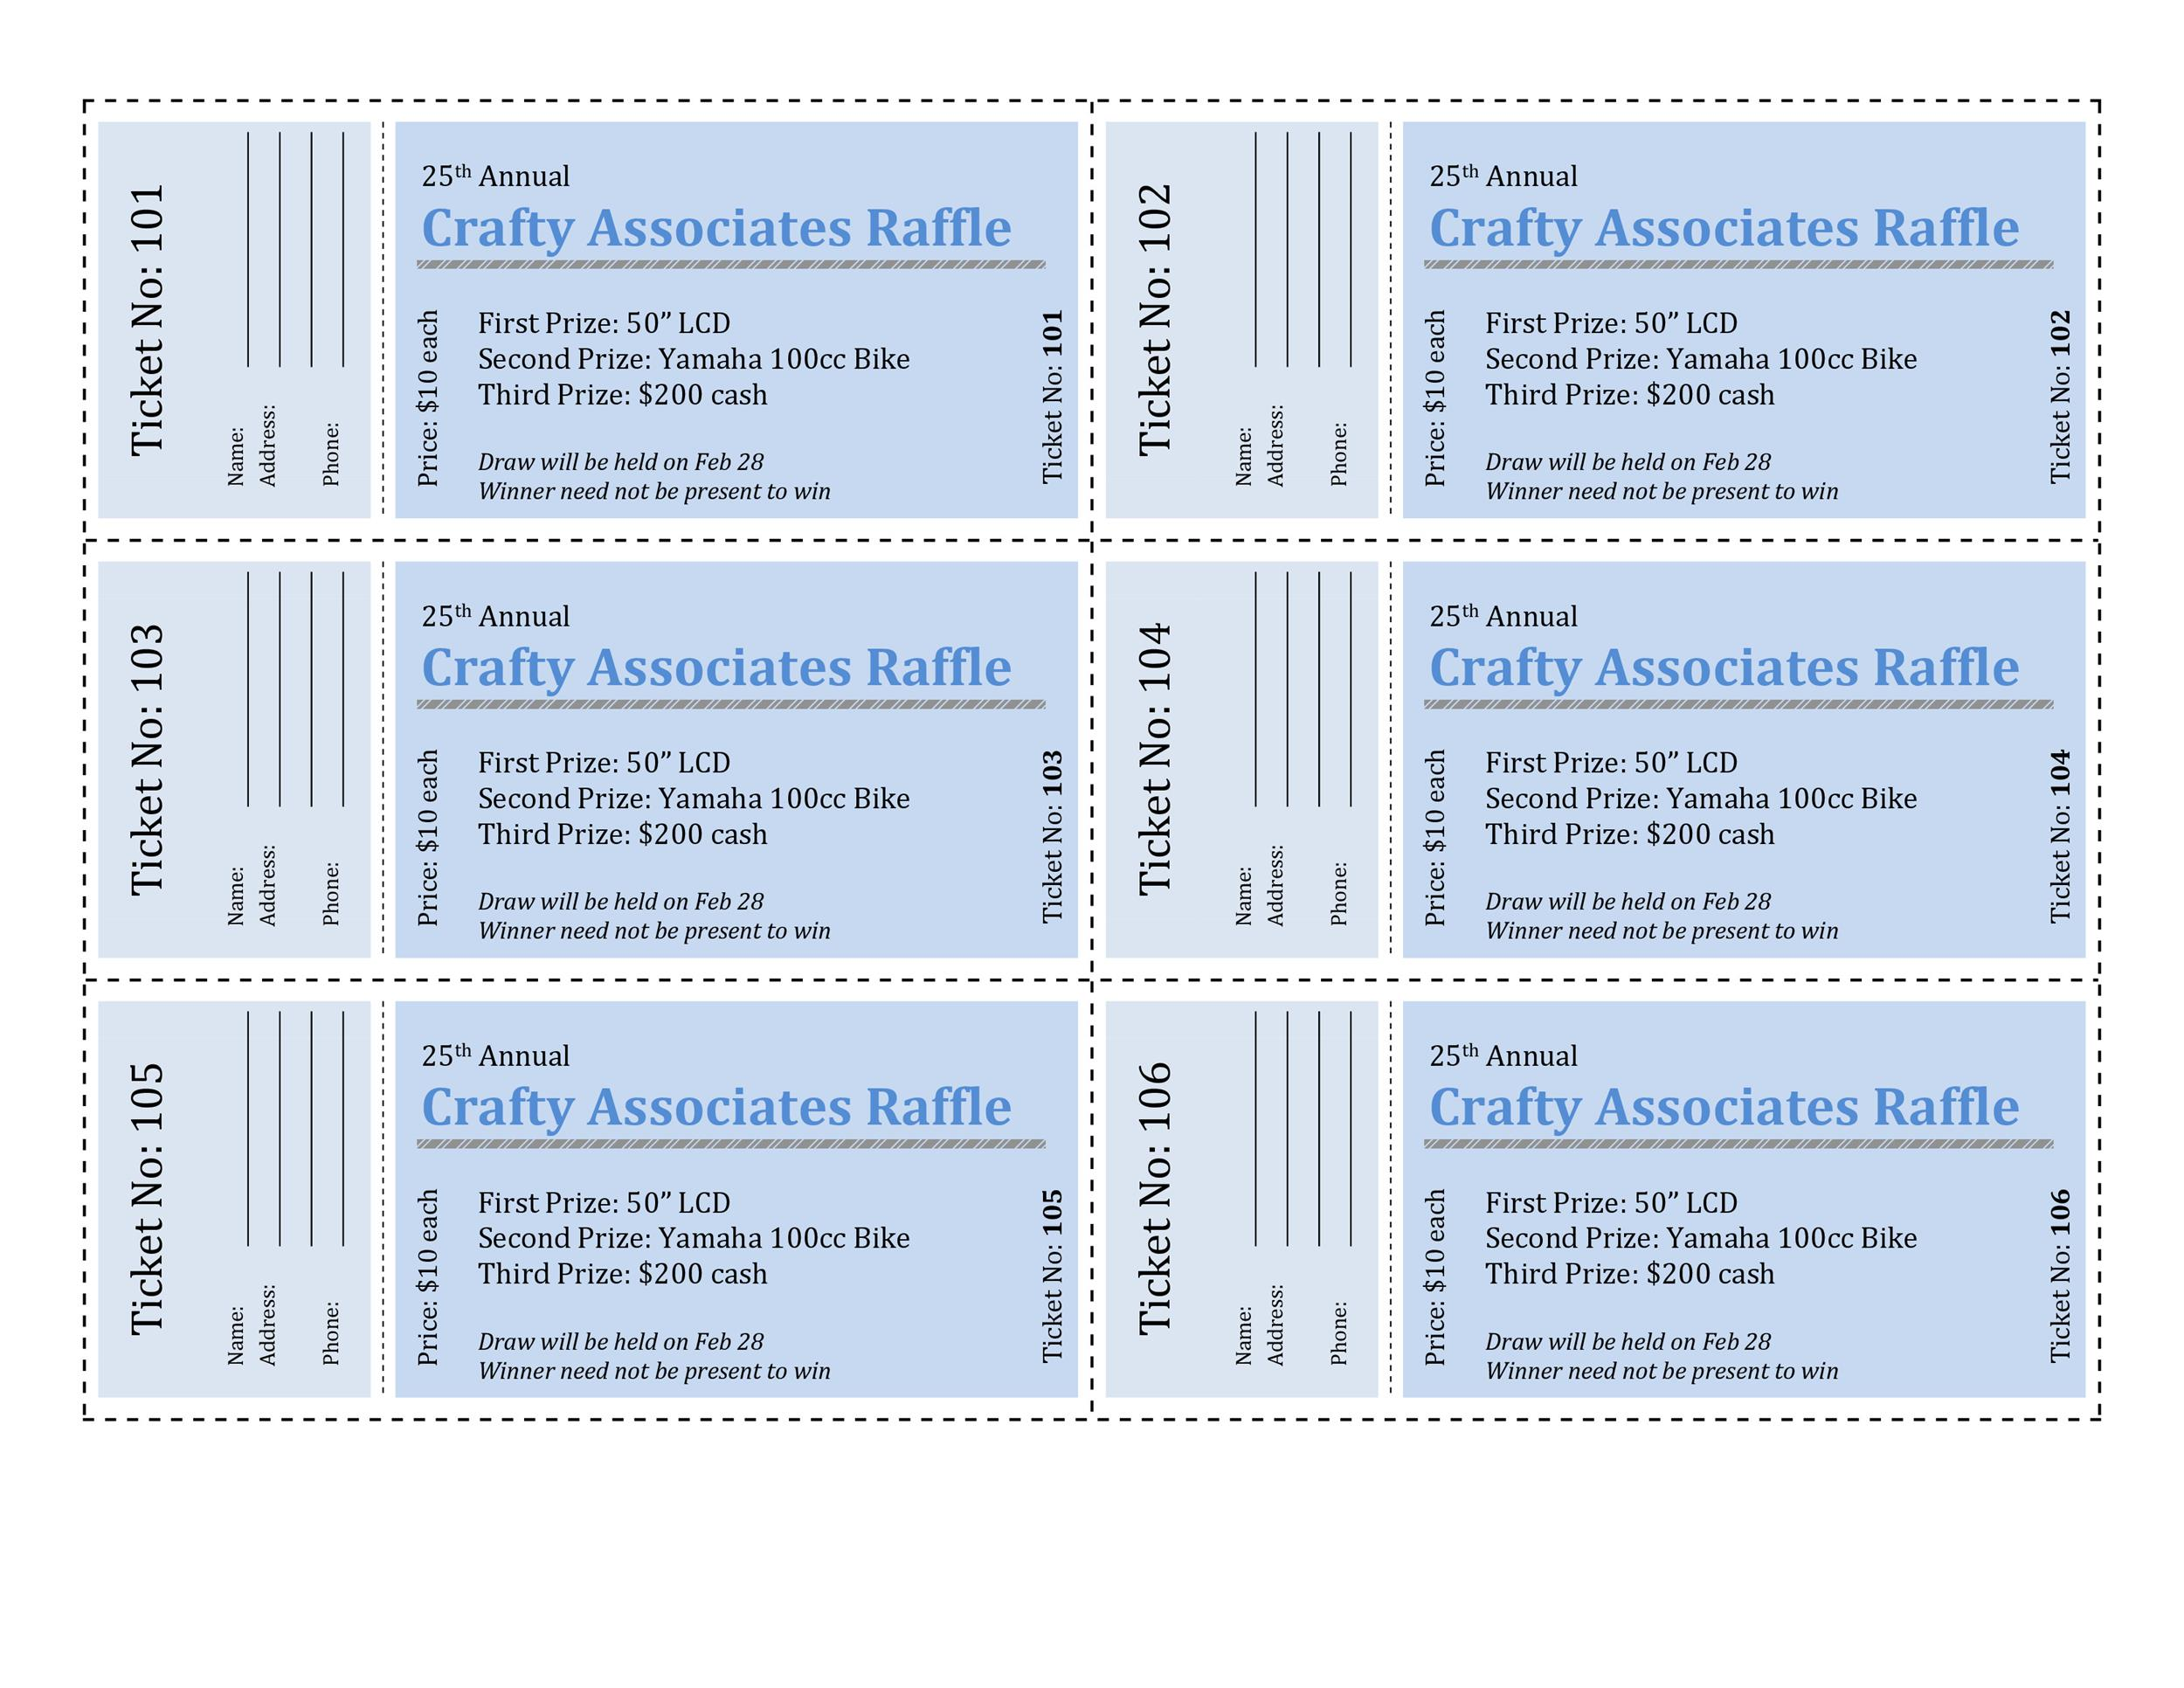 Free Editable Raffle Movie Ticket Templates - Raffle ticket template word